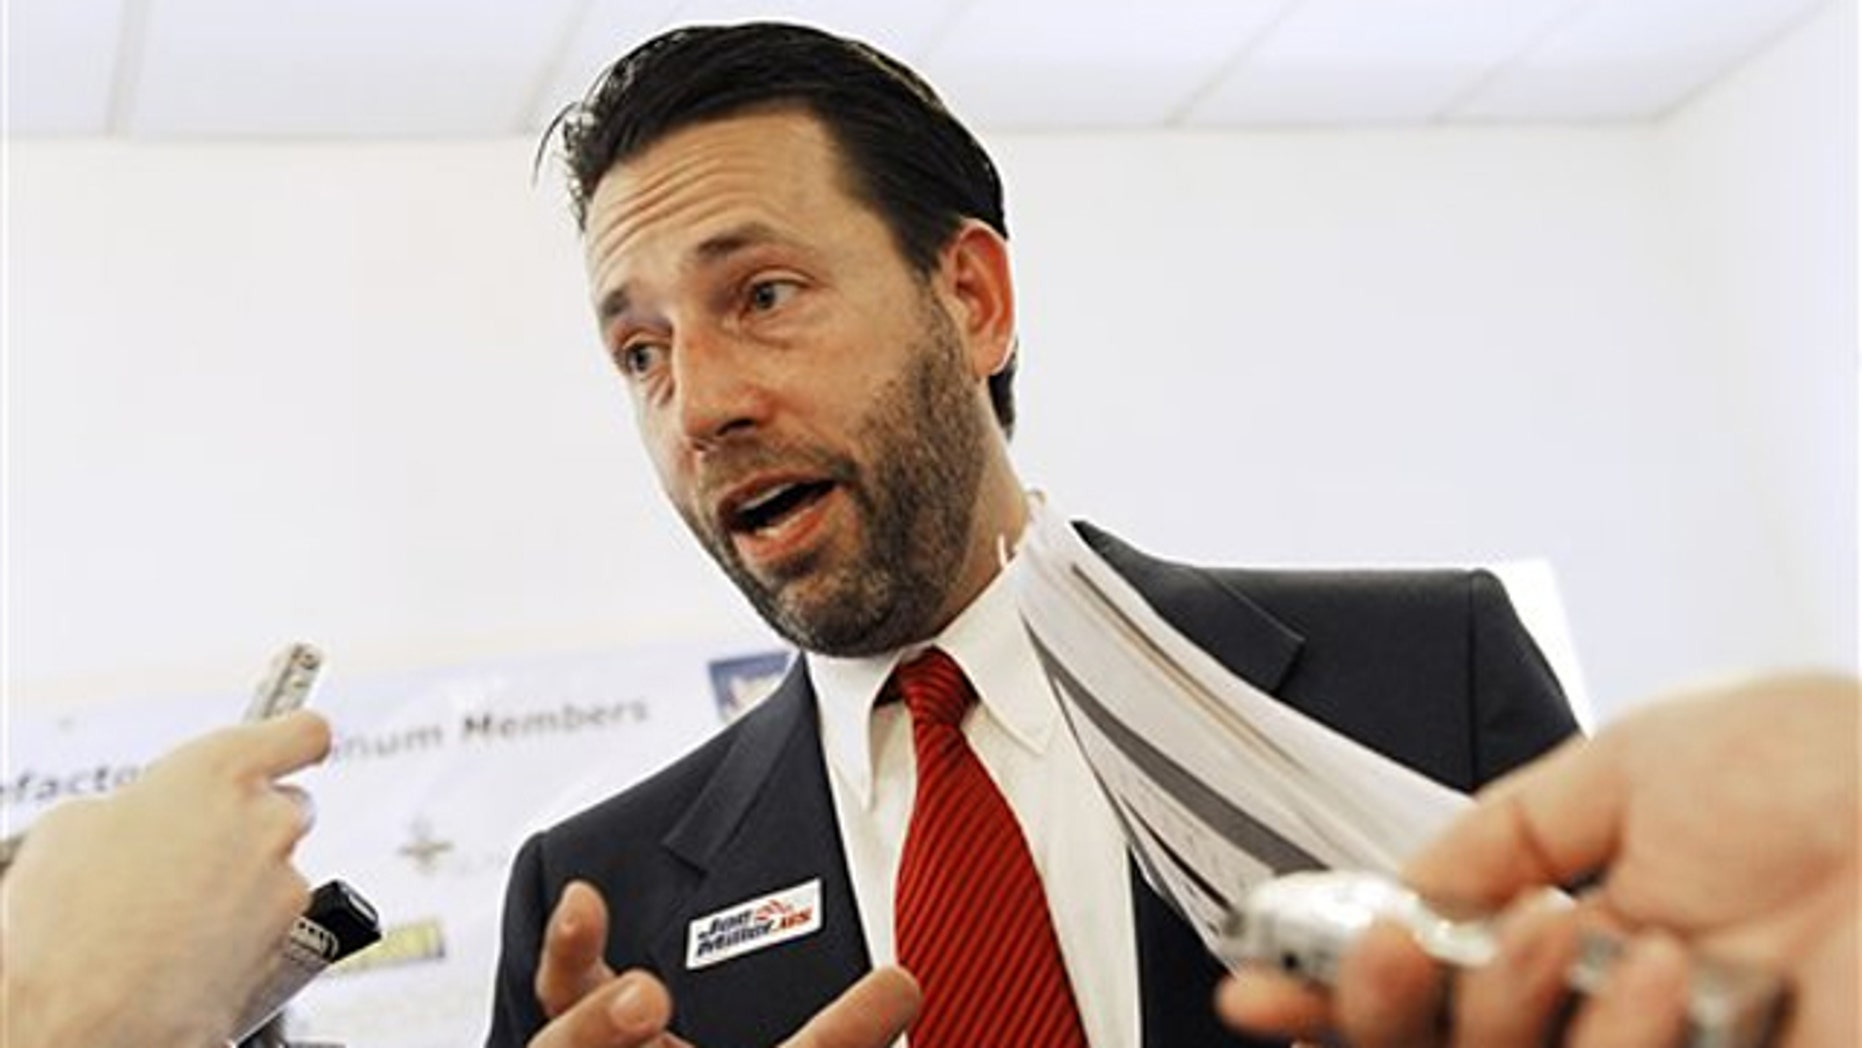 In this Sept. 16 photo, Republican Senate candidate Joe Miller answers questions from the media in Juneau, Alaska. (AP Photo)